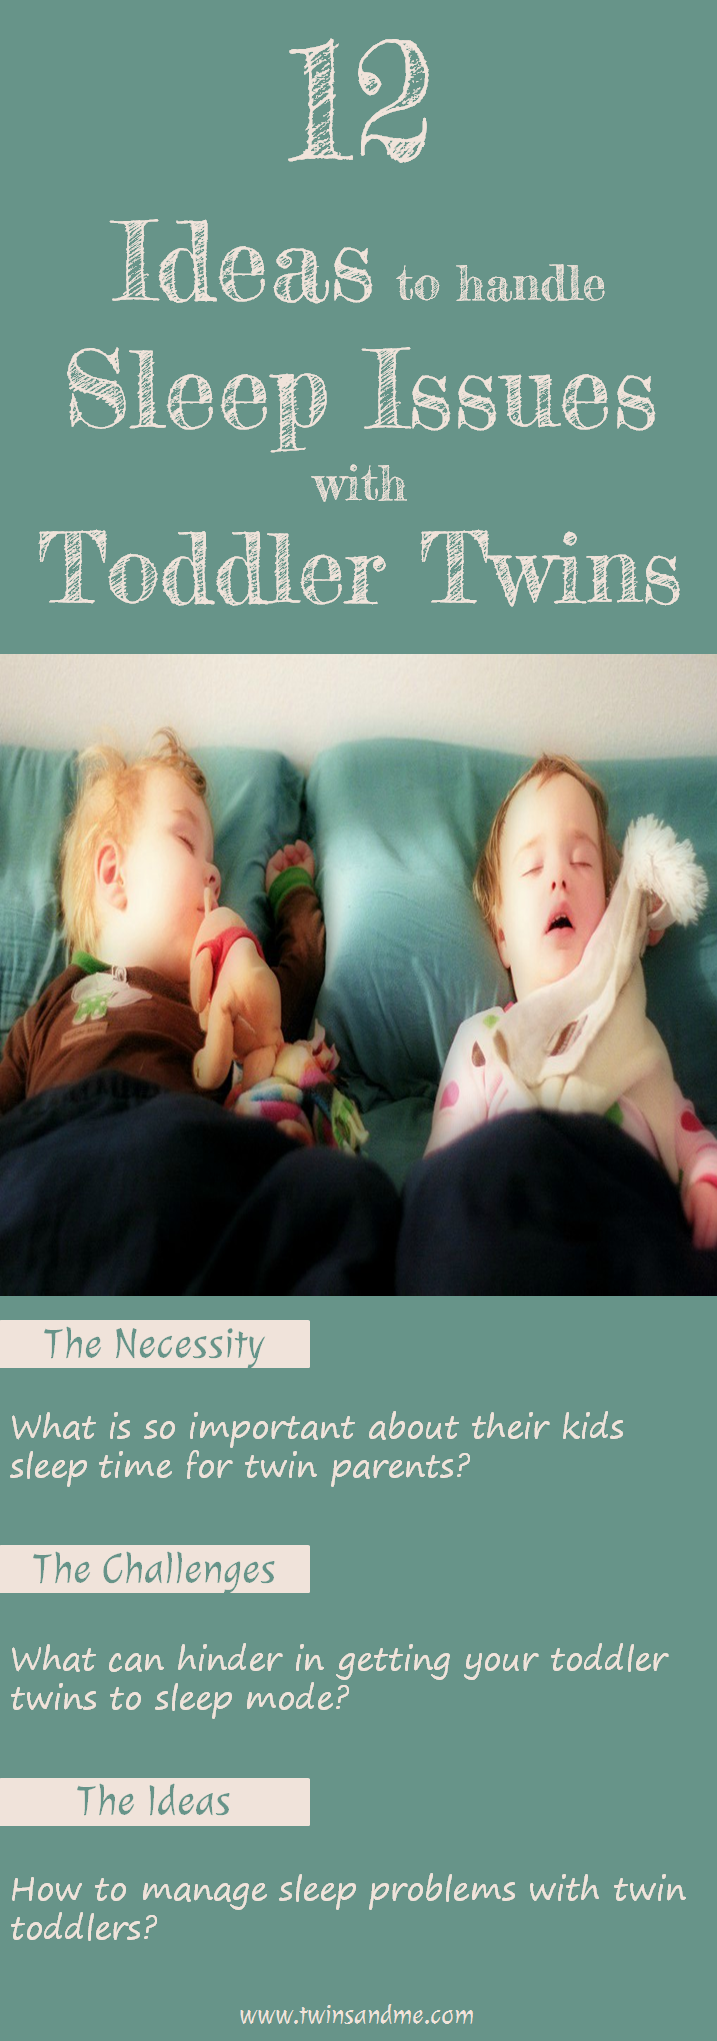 How To Help Kids Manage Sleep >> 12 Ideas To Handle Sleep Issues With Toddler Twins Twins And Me